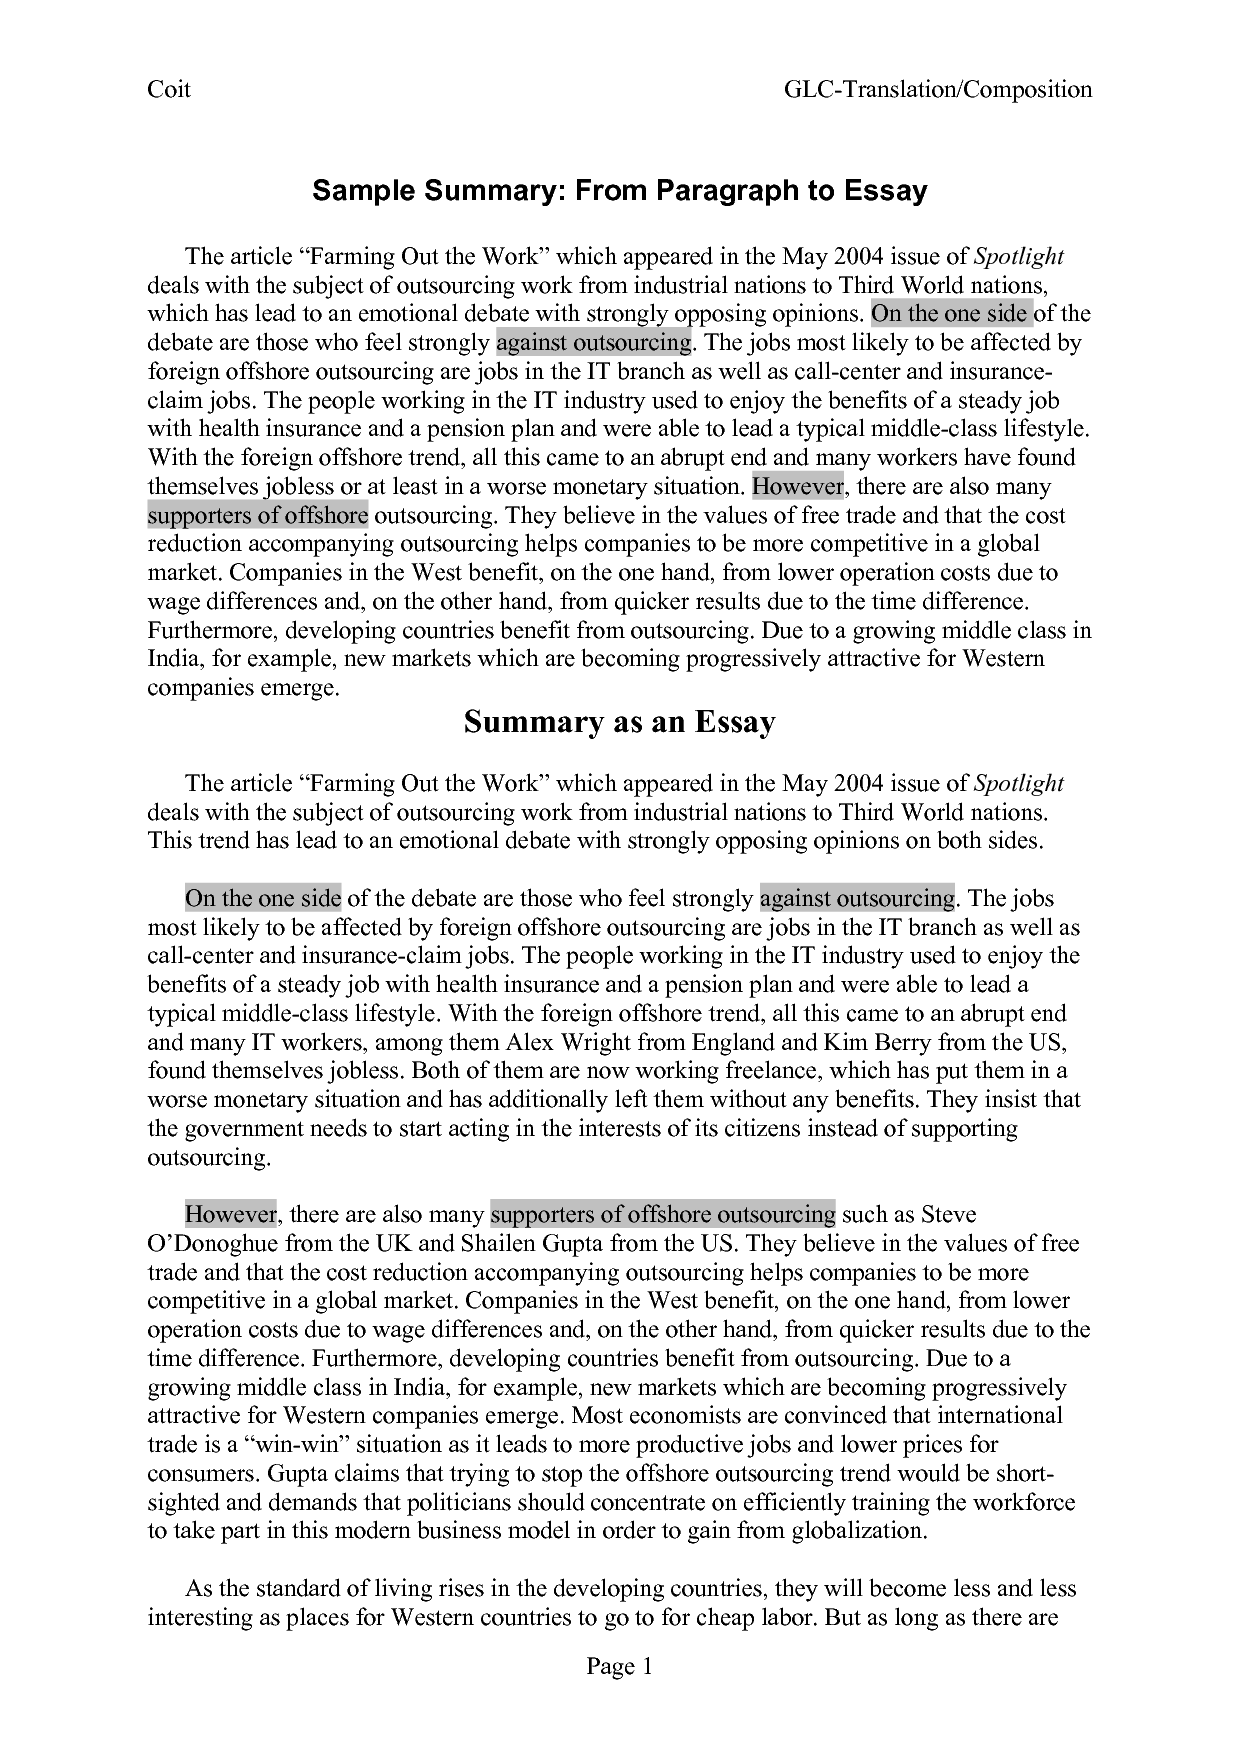 Structure of a thesis statement for a research paper